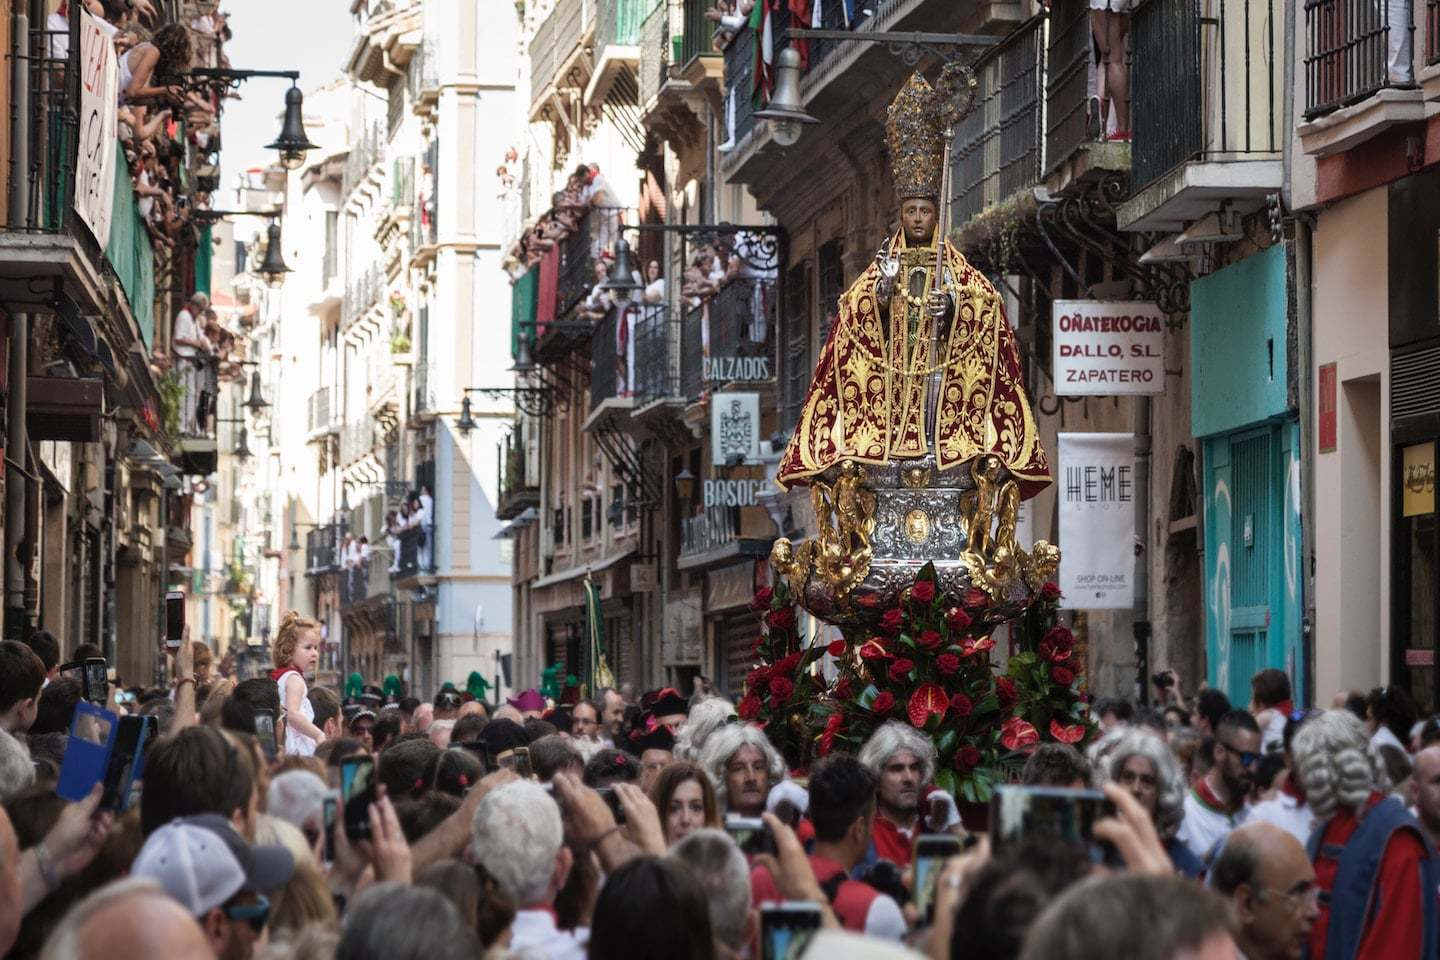 crowded street during festival in Spain